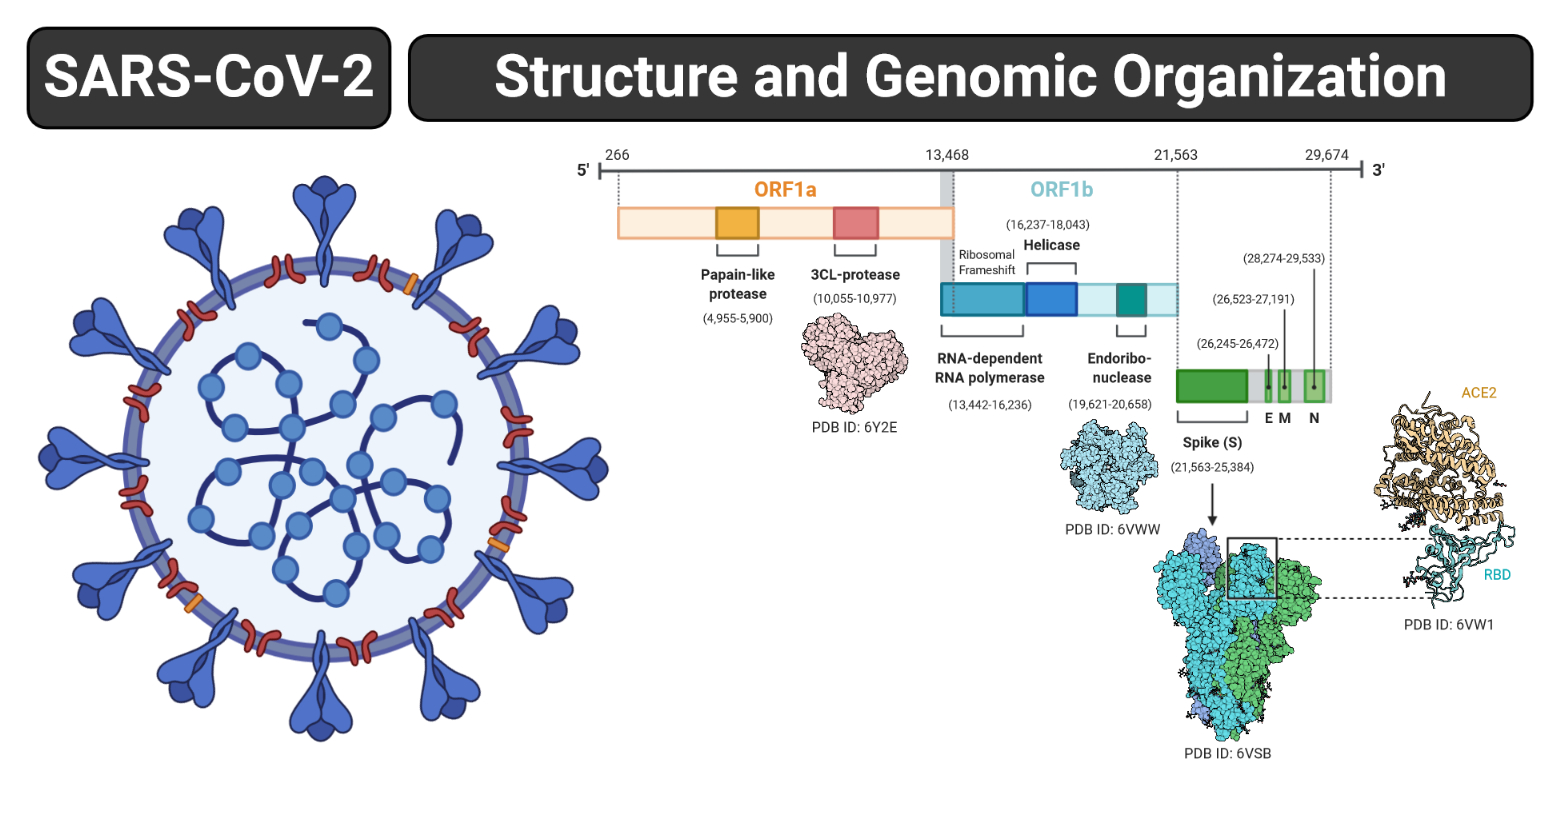 Structure and Genome of SARS-CoV-2 (COVID-19) with diagram